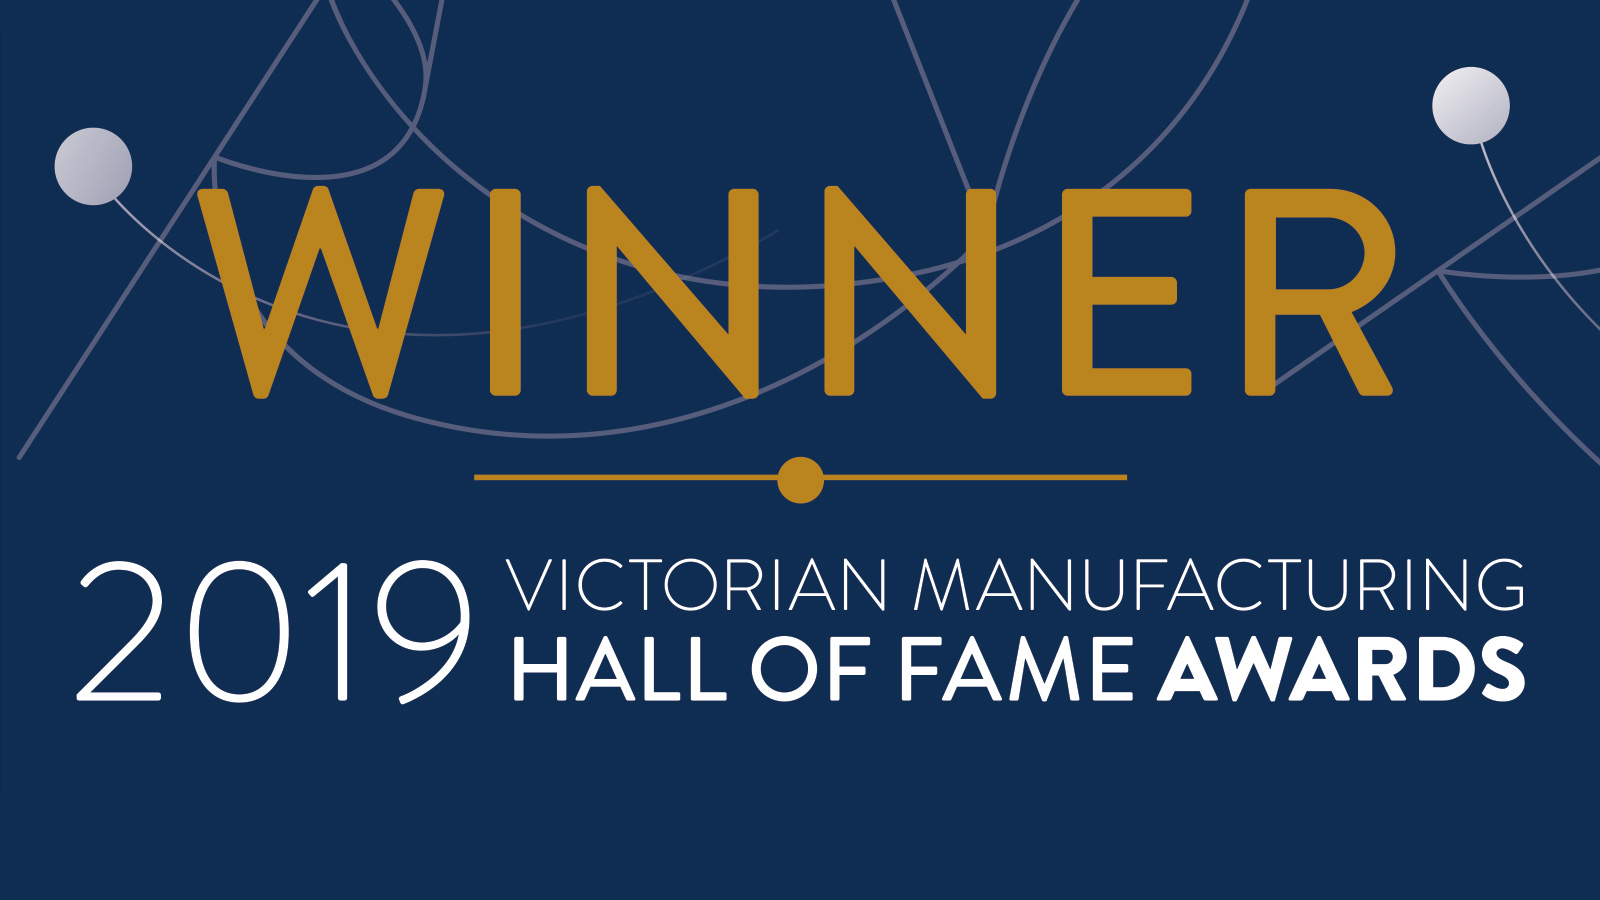 HSV Celebrates Win - 2019 Victorian Manufacturing Hall of Fame Awards